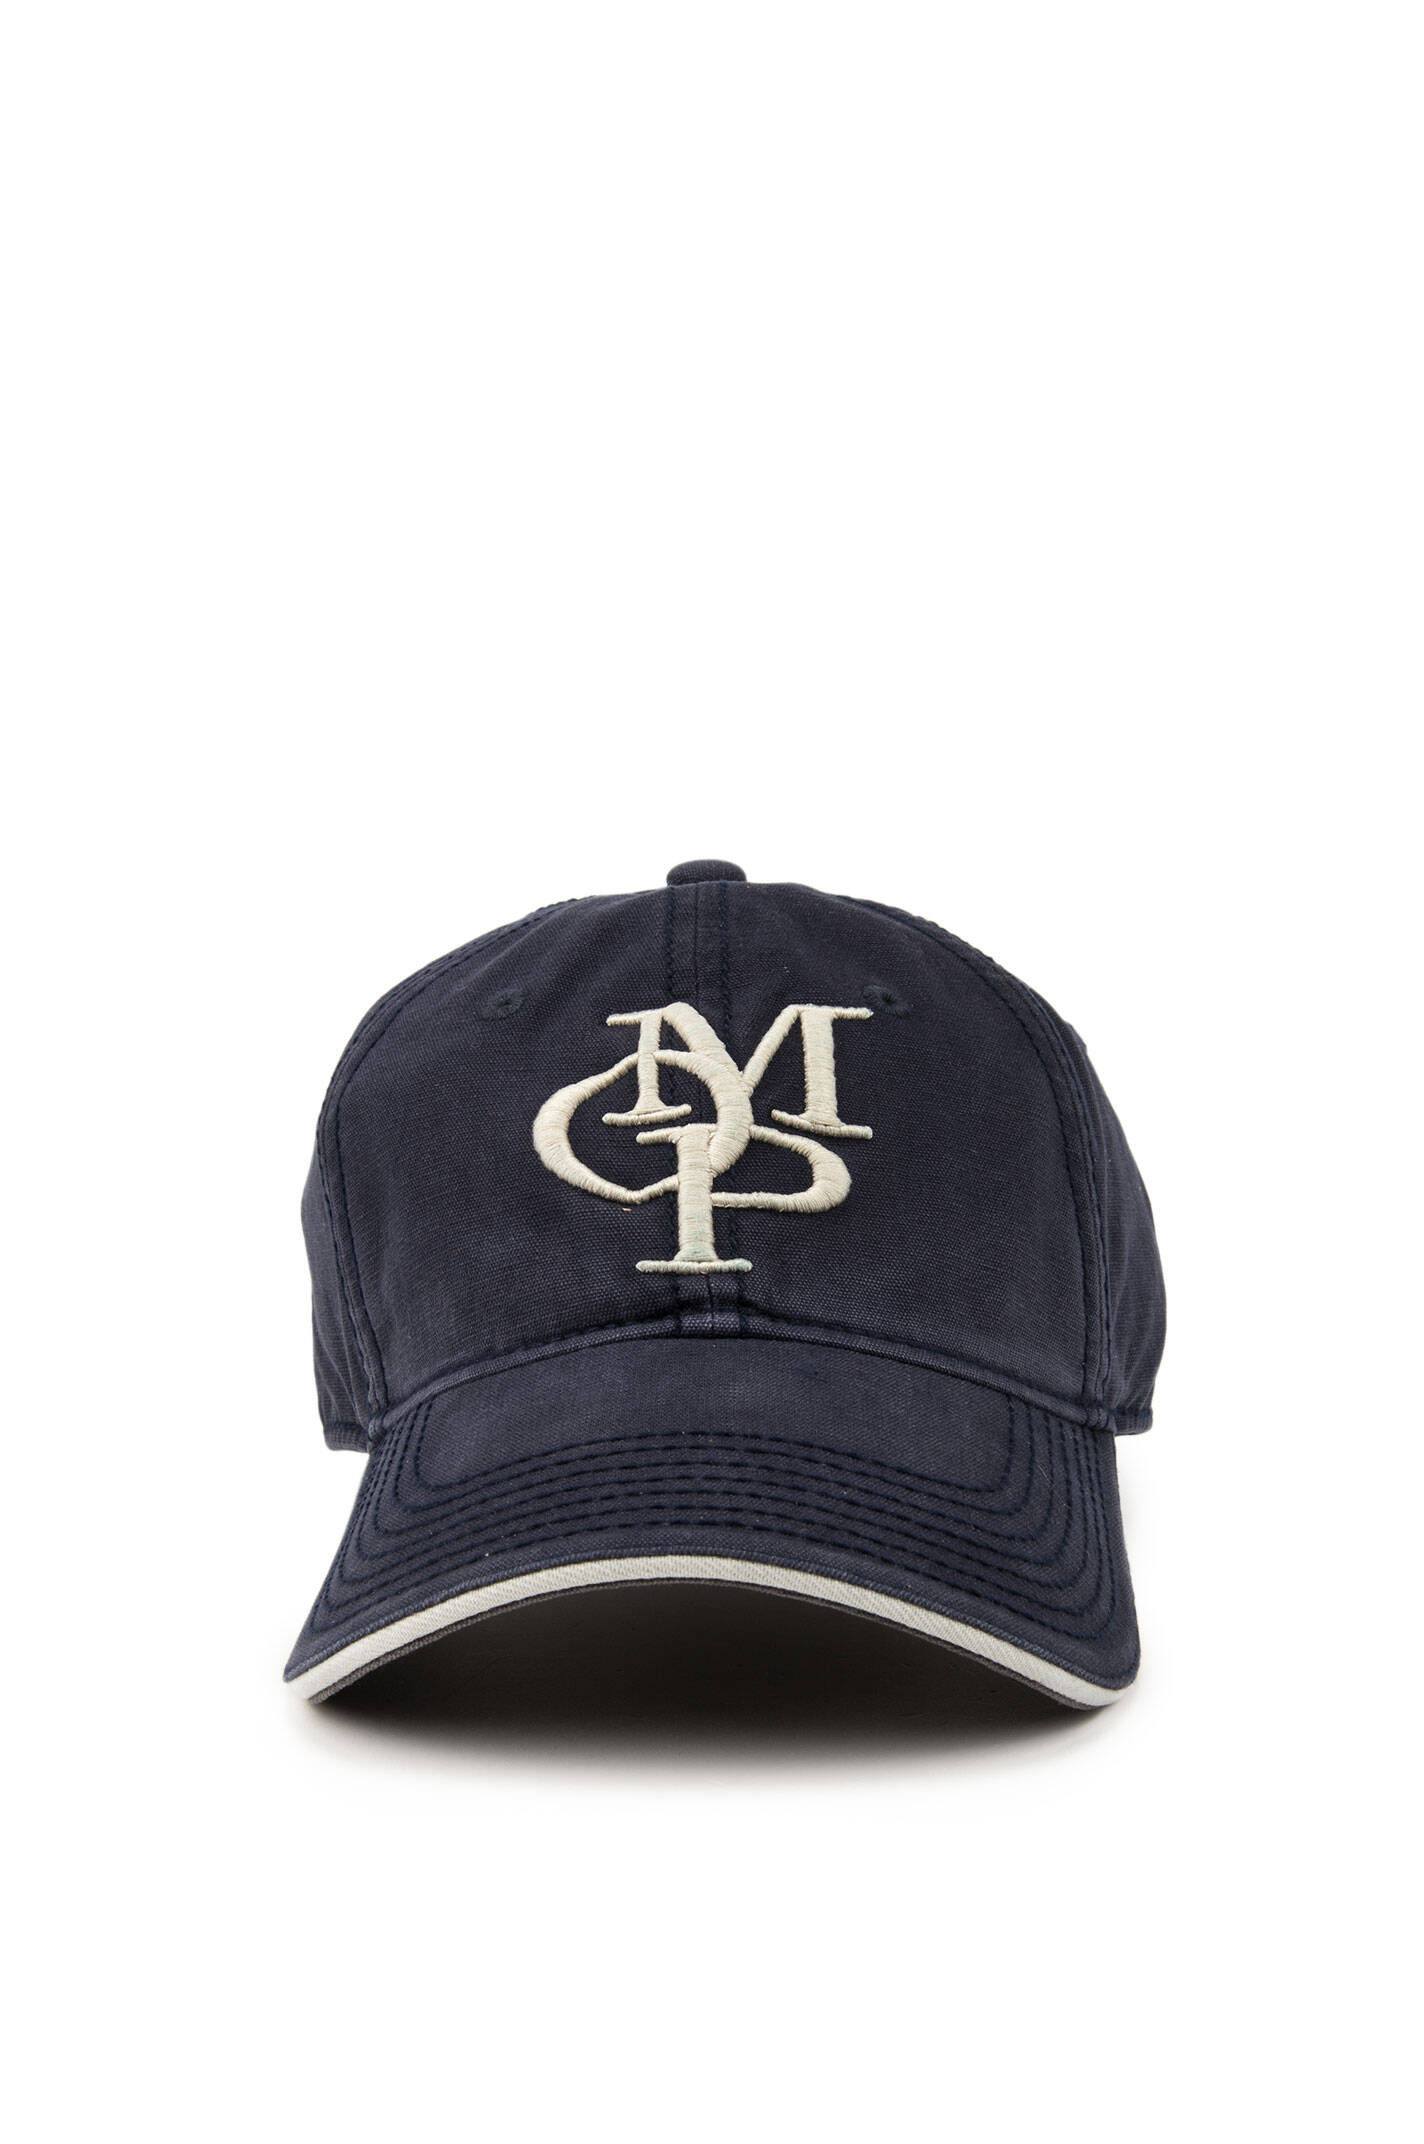 baseball cap marc o 39 polo navy blue caps hats. Black Bedroom Furniture Sets. Home Design Ideas